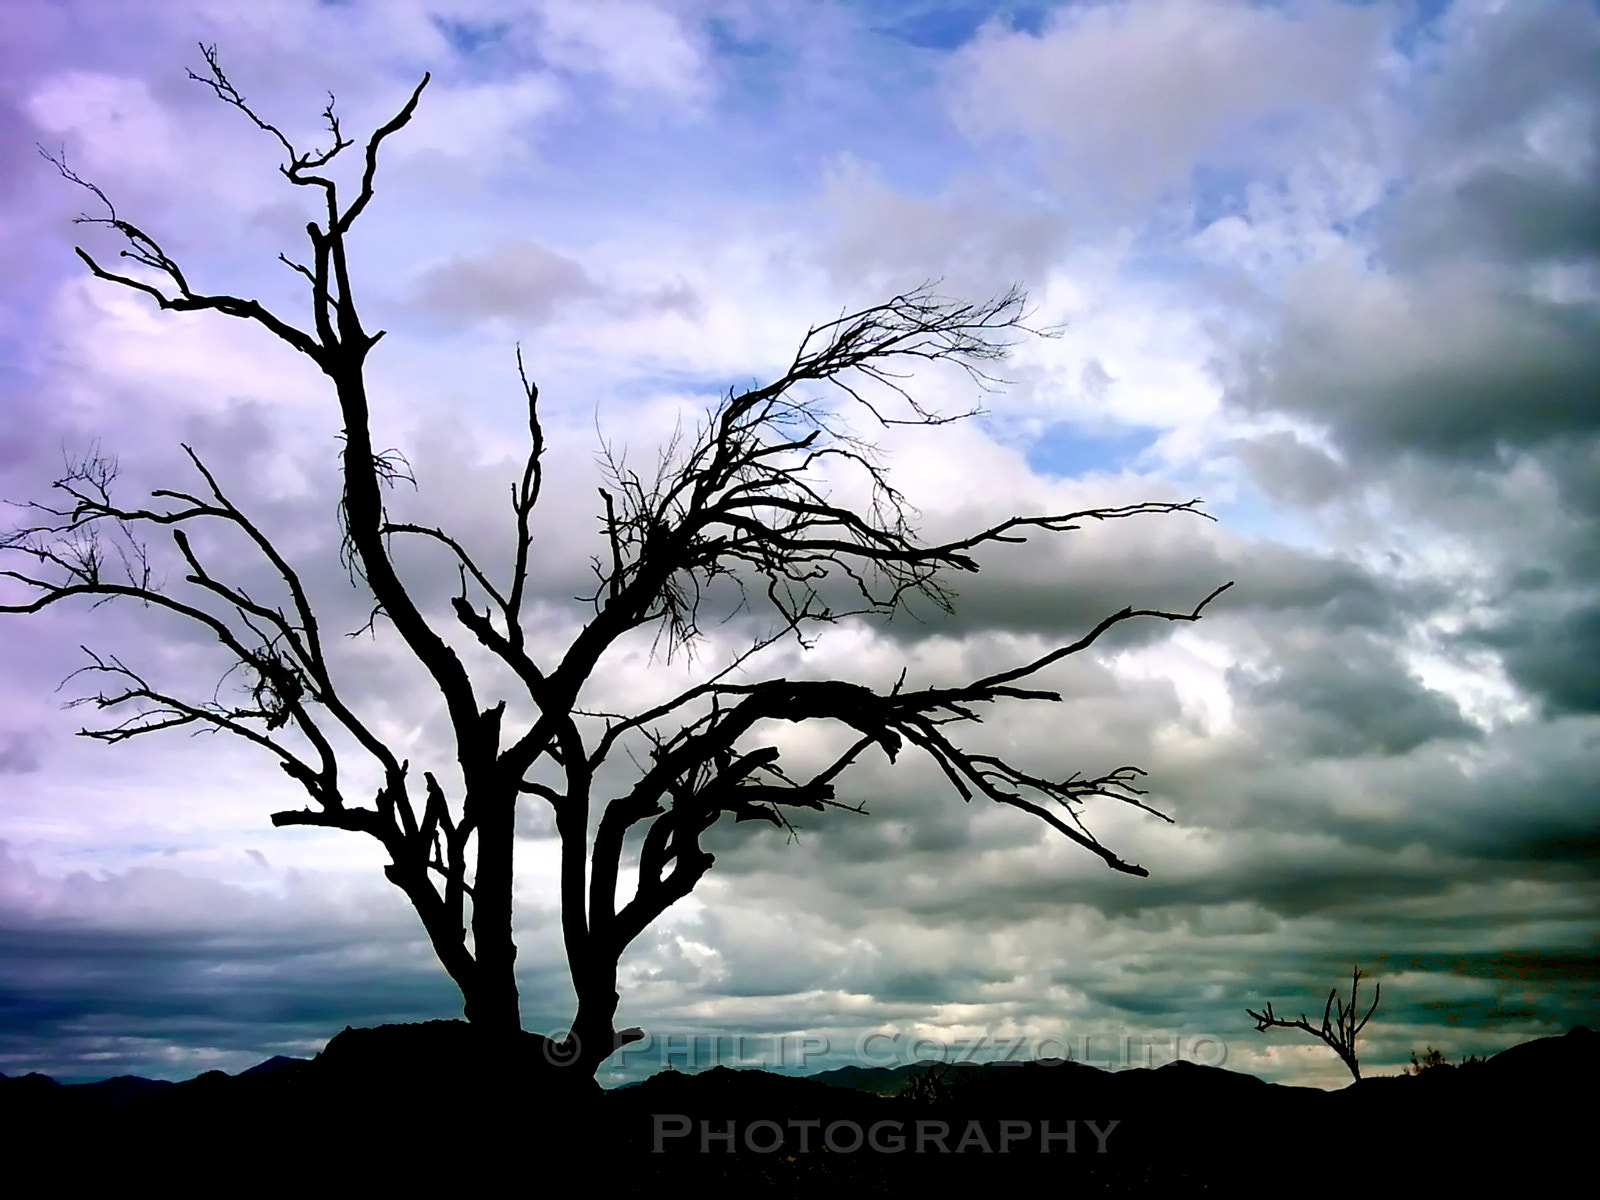 Photograph Gloomy Scottsdale by Philip Cozzolino on 500px